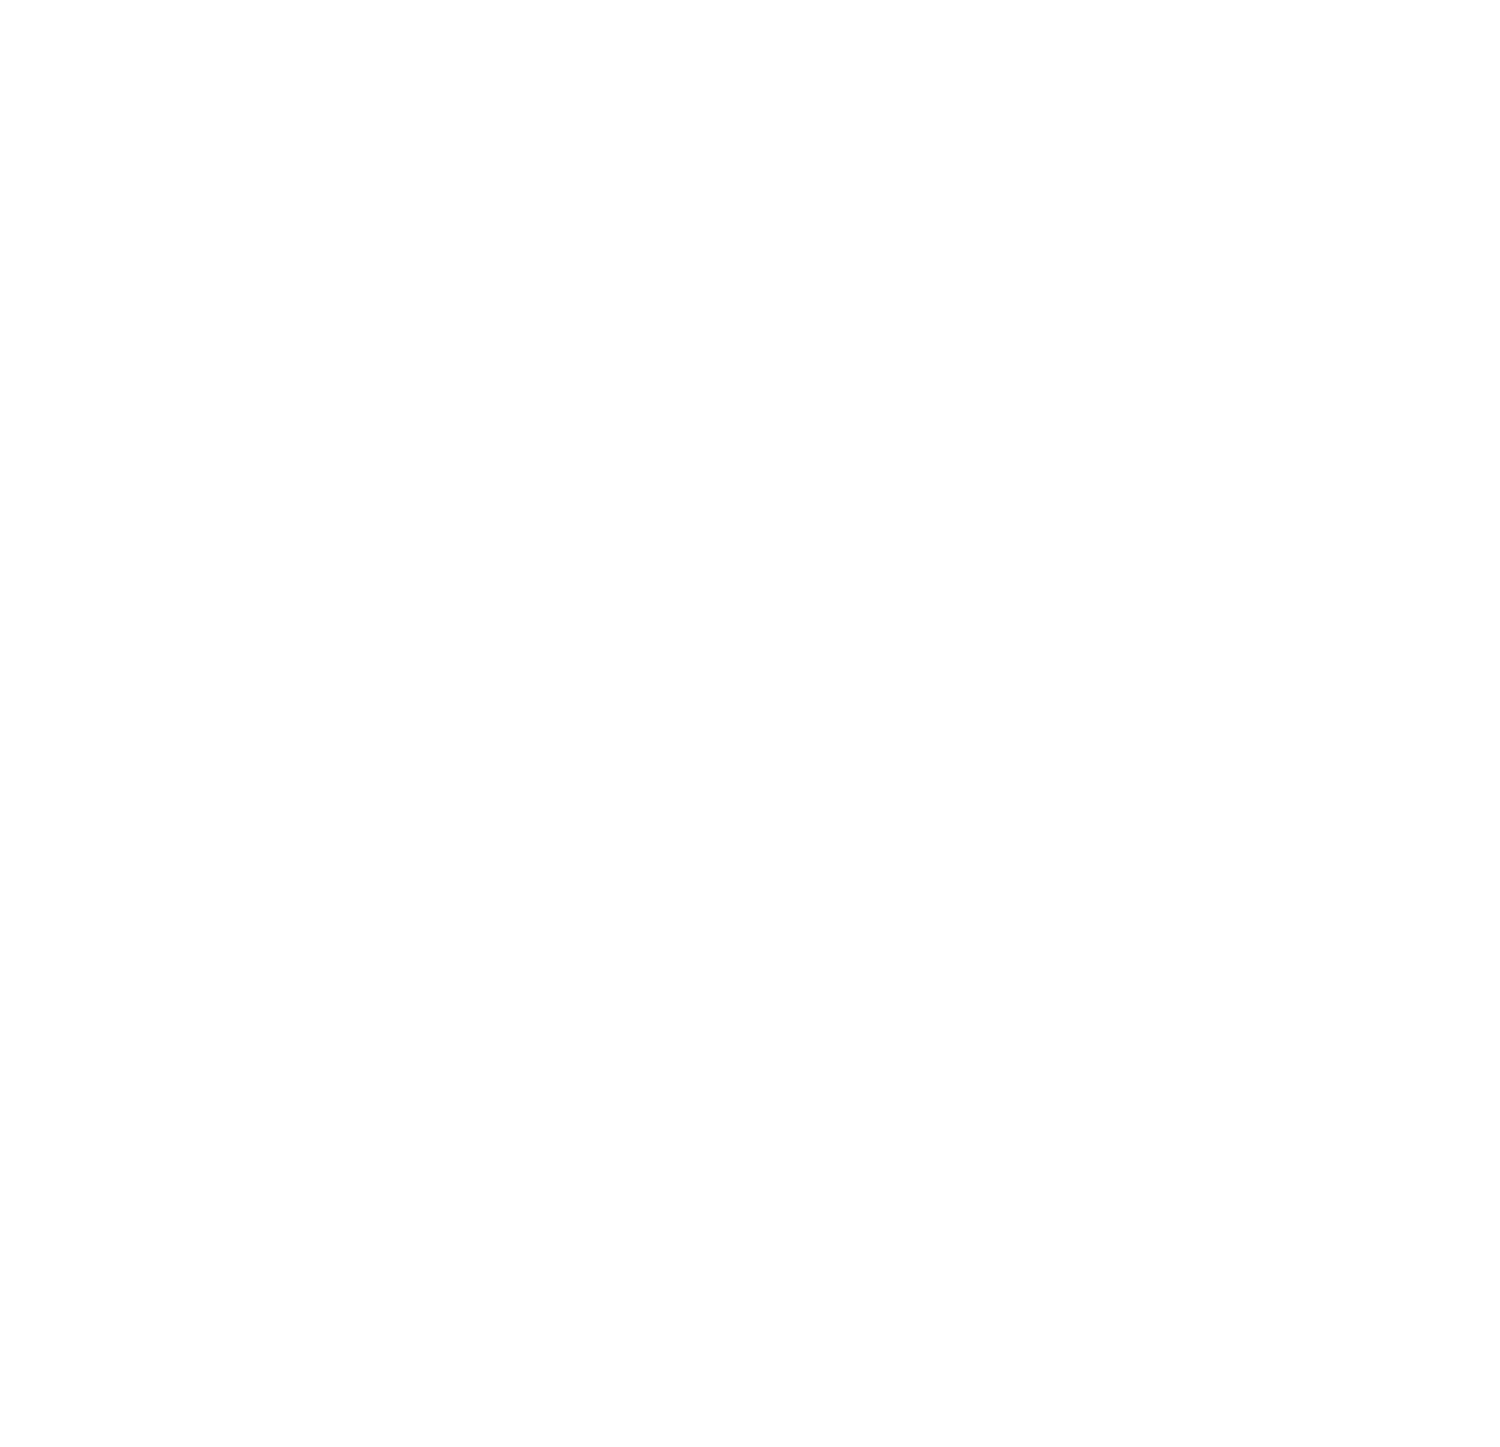 Self Inflicted Studios